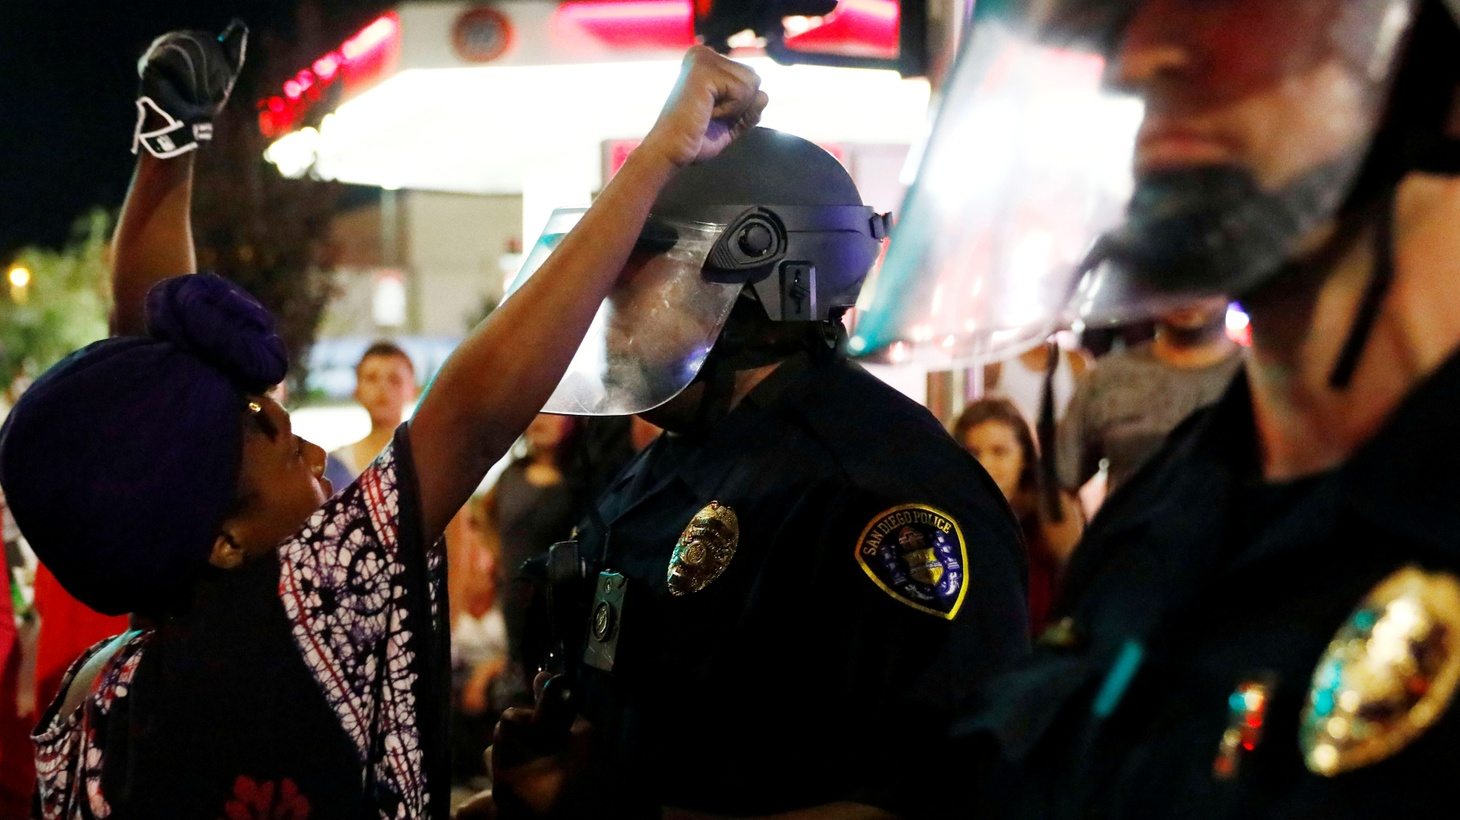 Four SoCal men have been killed in confrontations with police in less than a week. In the most recent incident,   officers were wearing body cameras. What effect do body cams have on police behavior?